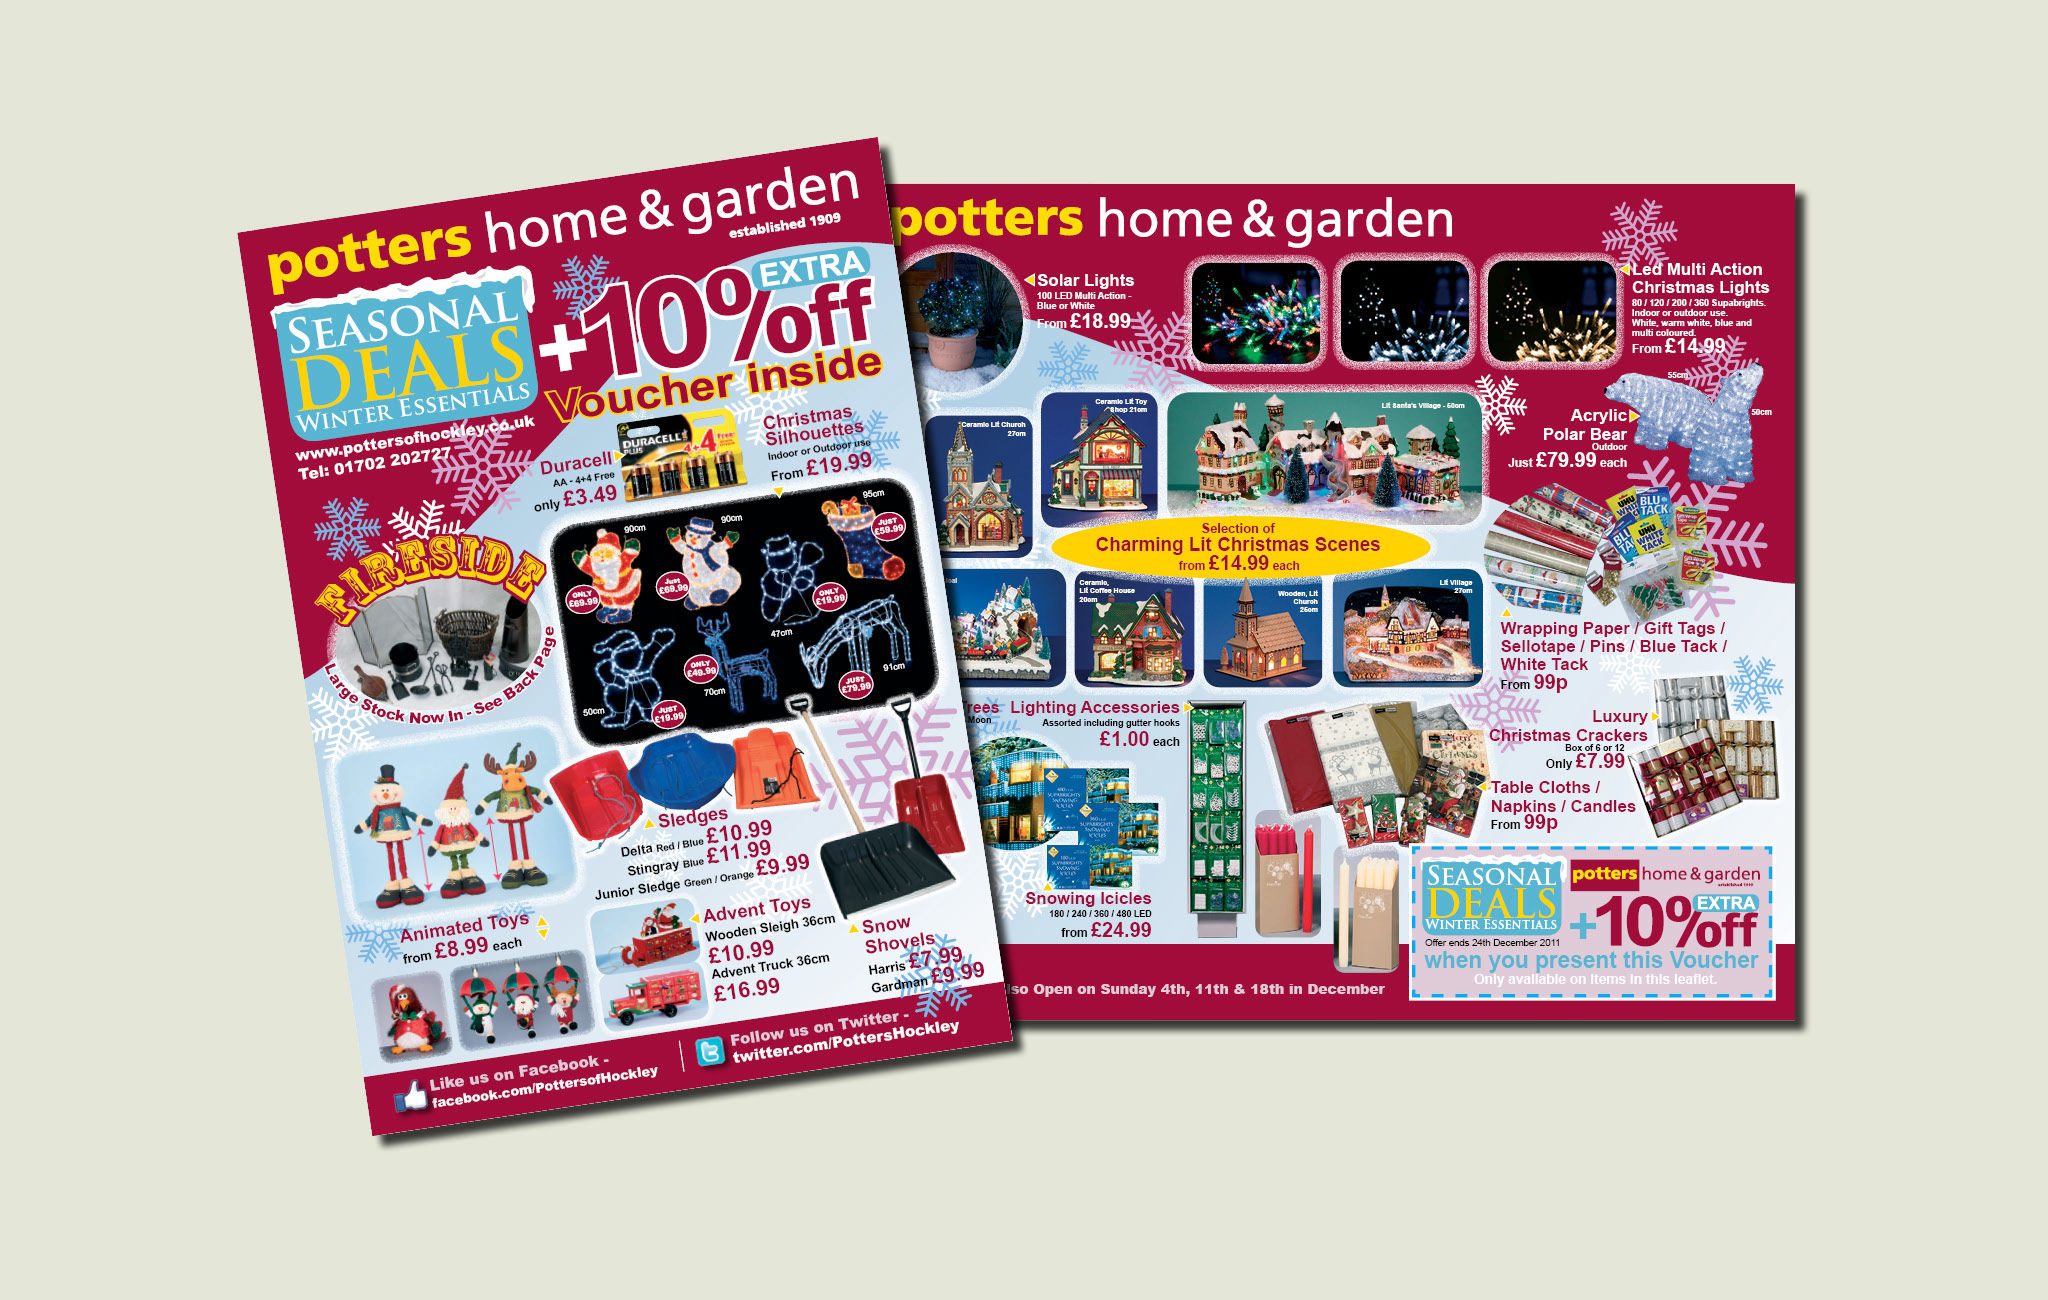 Potter's letterbox marketing brochure